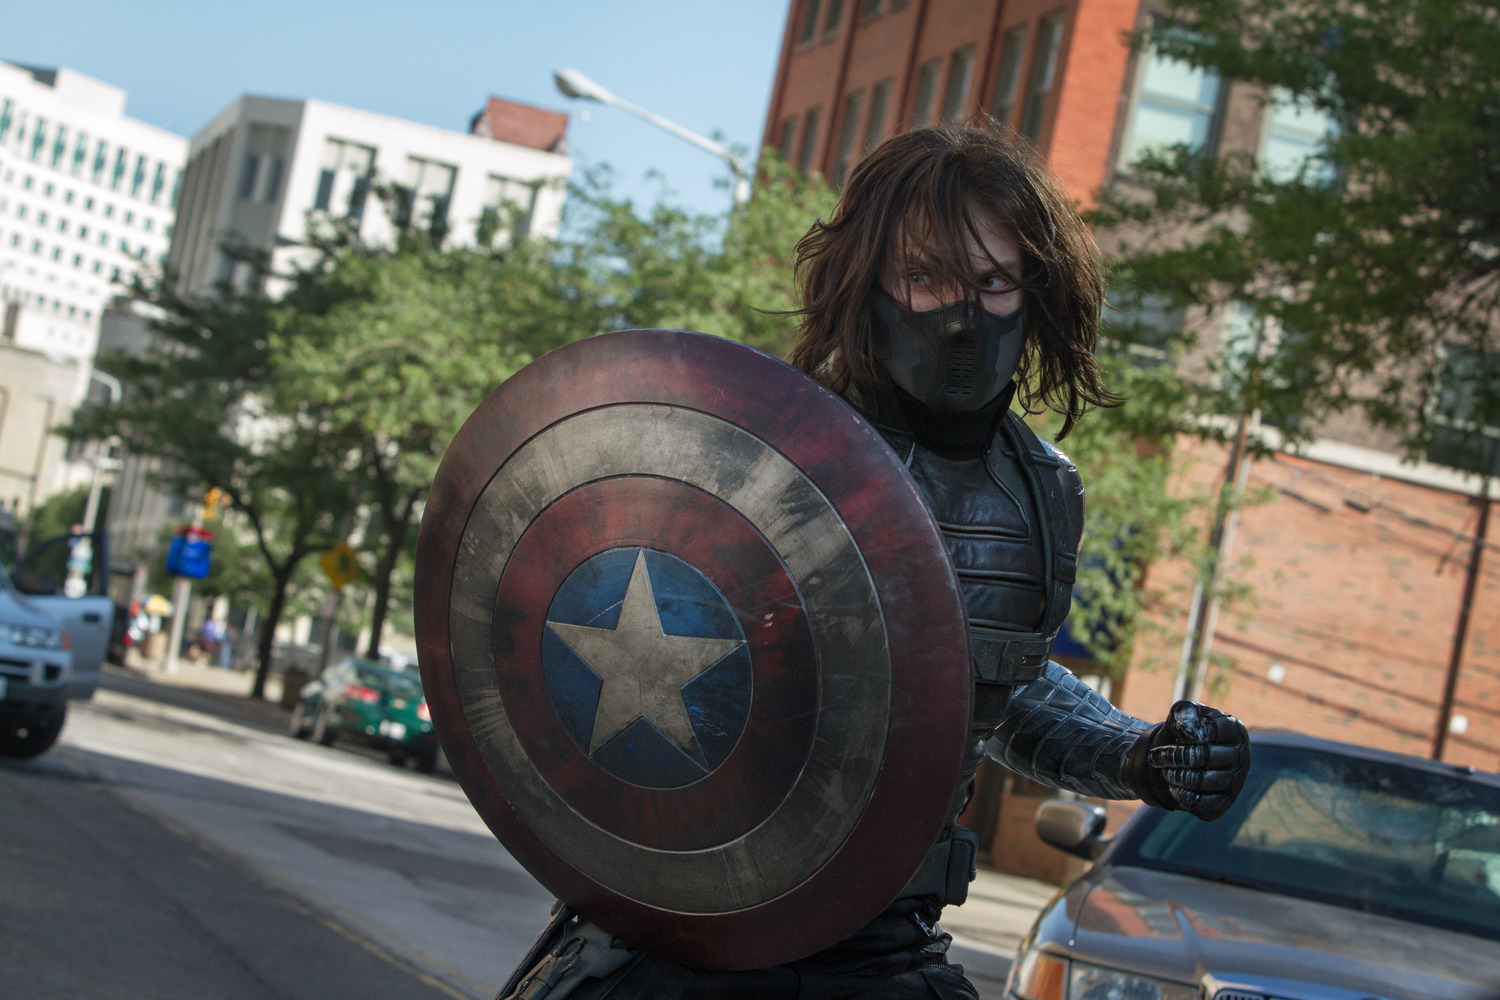 captain-america-le-soldat-de-l-hiver-captain-america-the-winter-soldier-26-03-2014-13-g.jpg